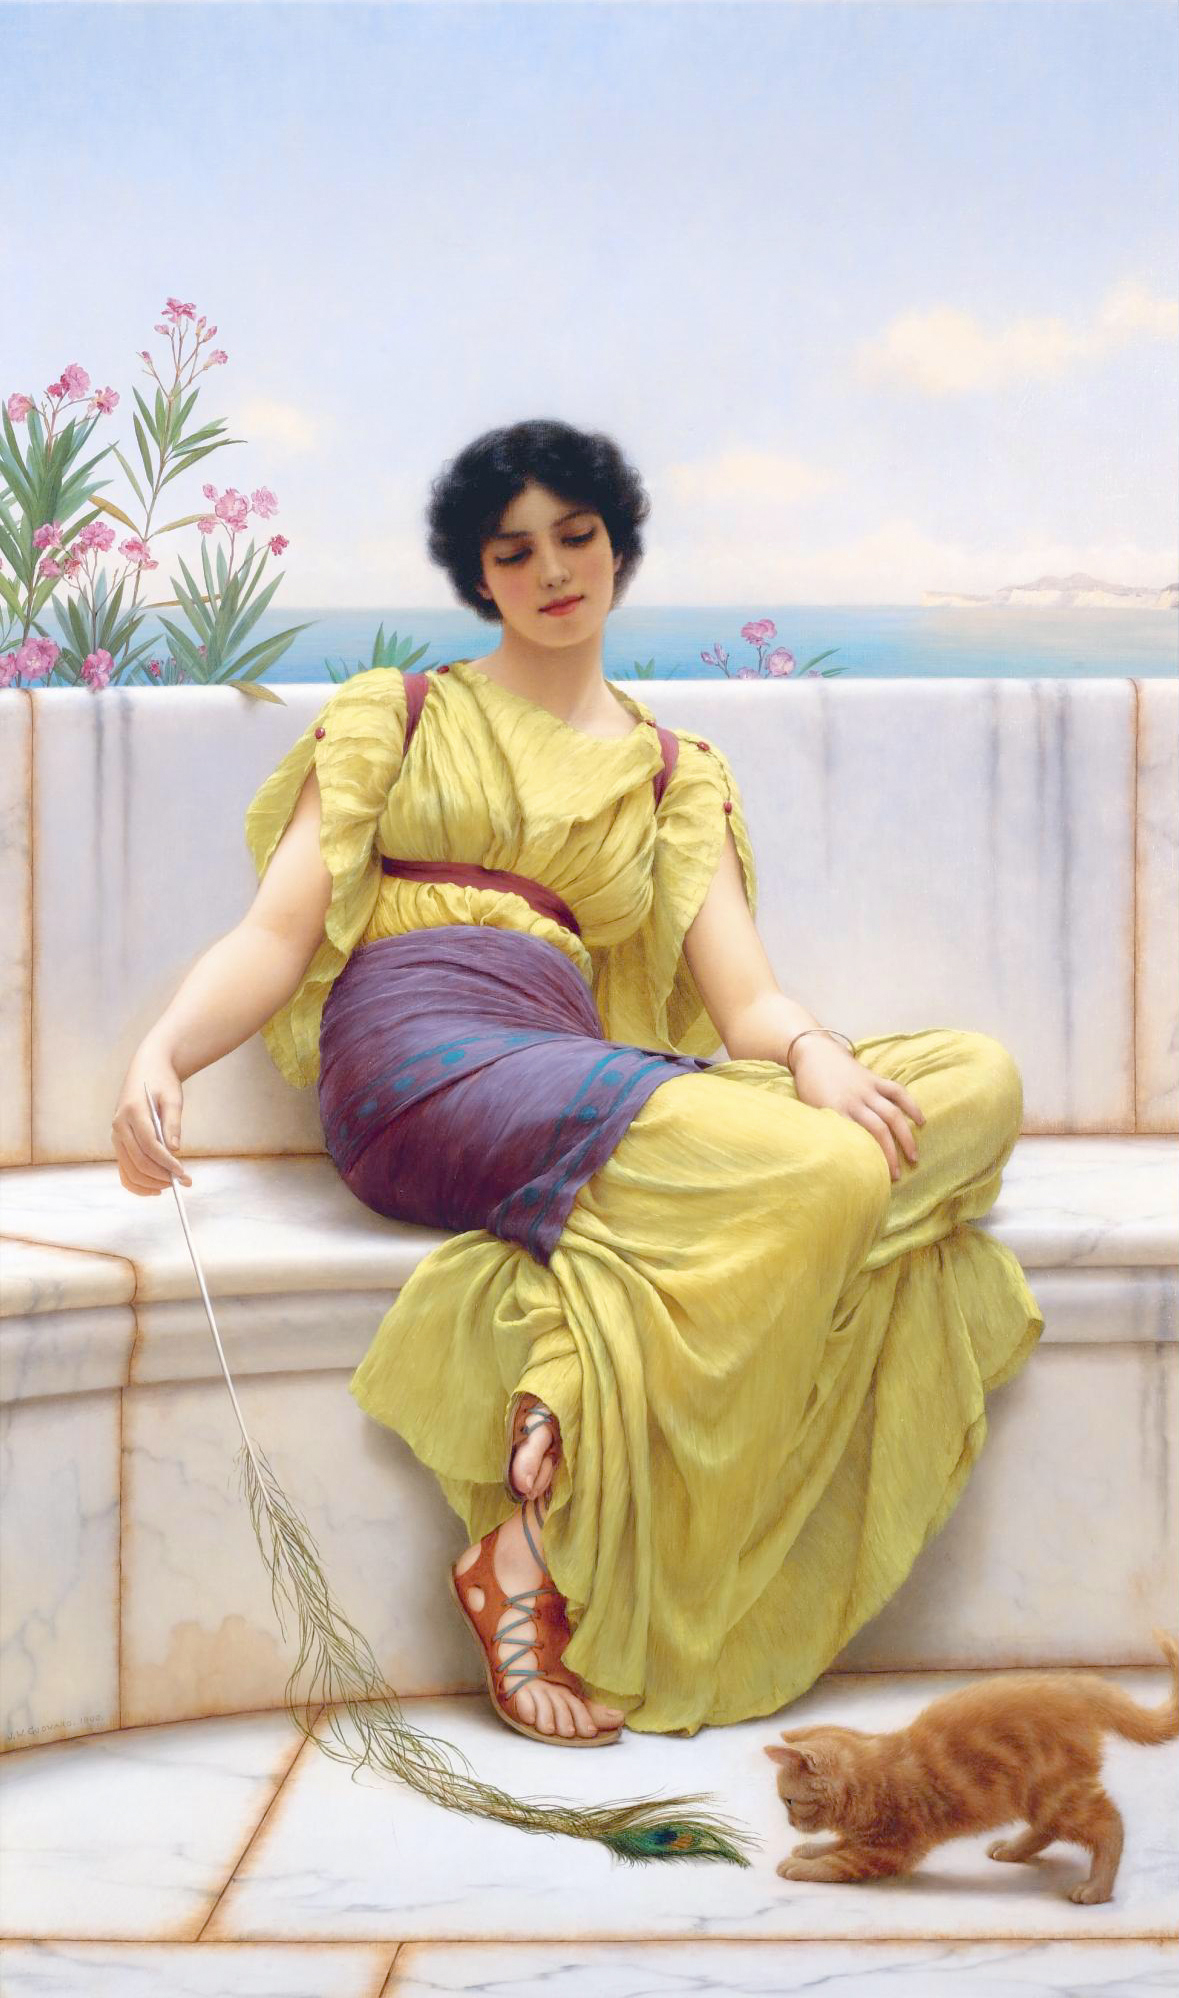 https://upload.wikimedia.org/wikipedia/commons/6/63/Godward_Idleness_1900.jpg